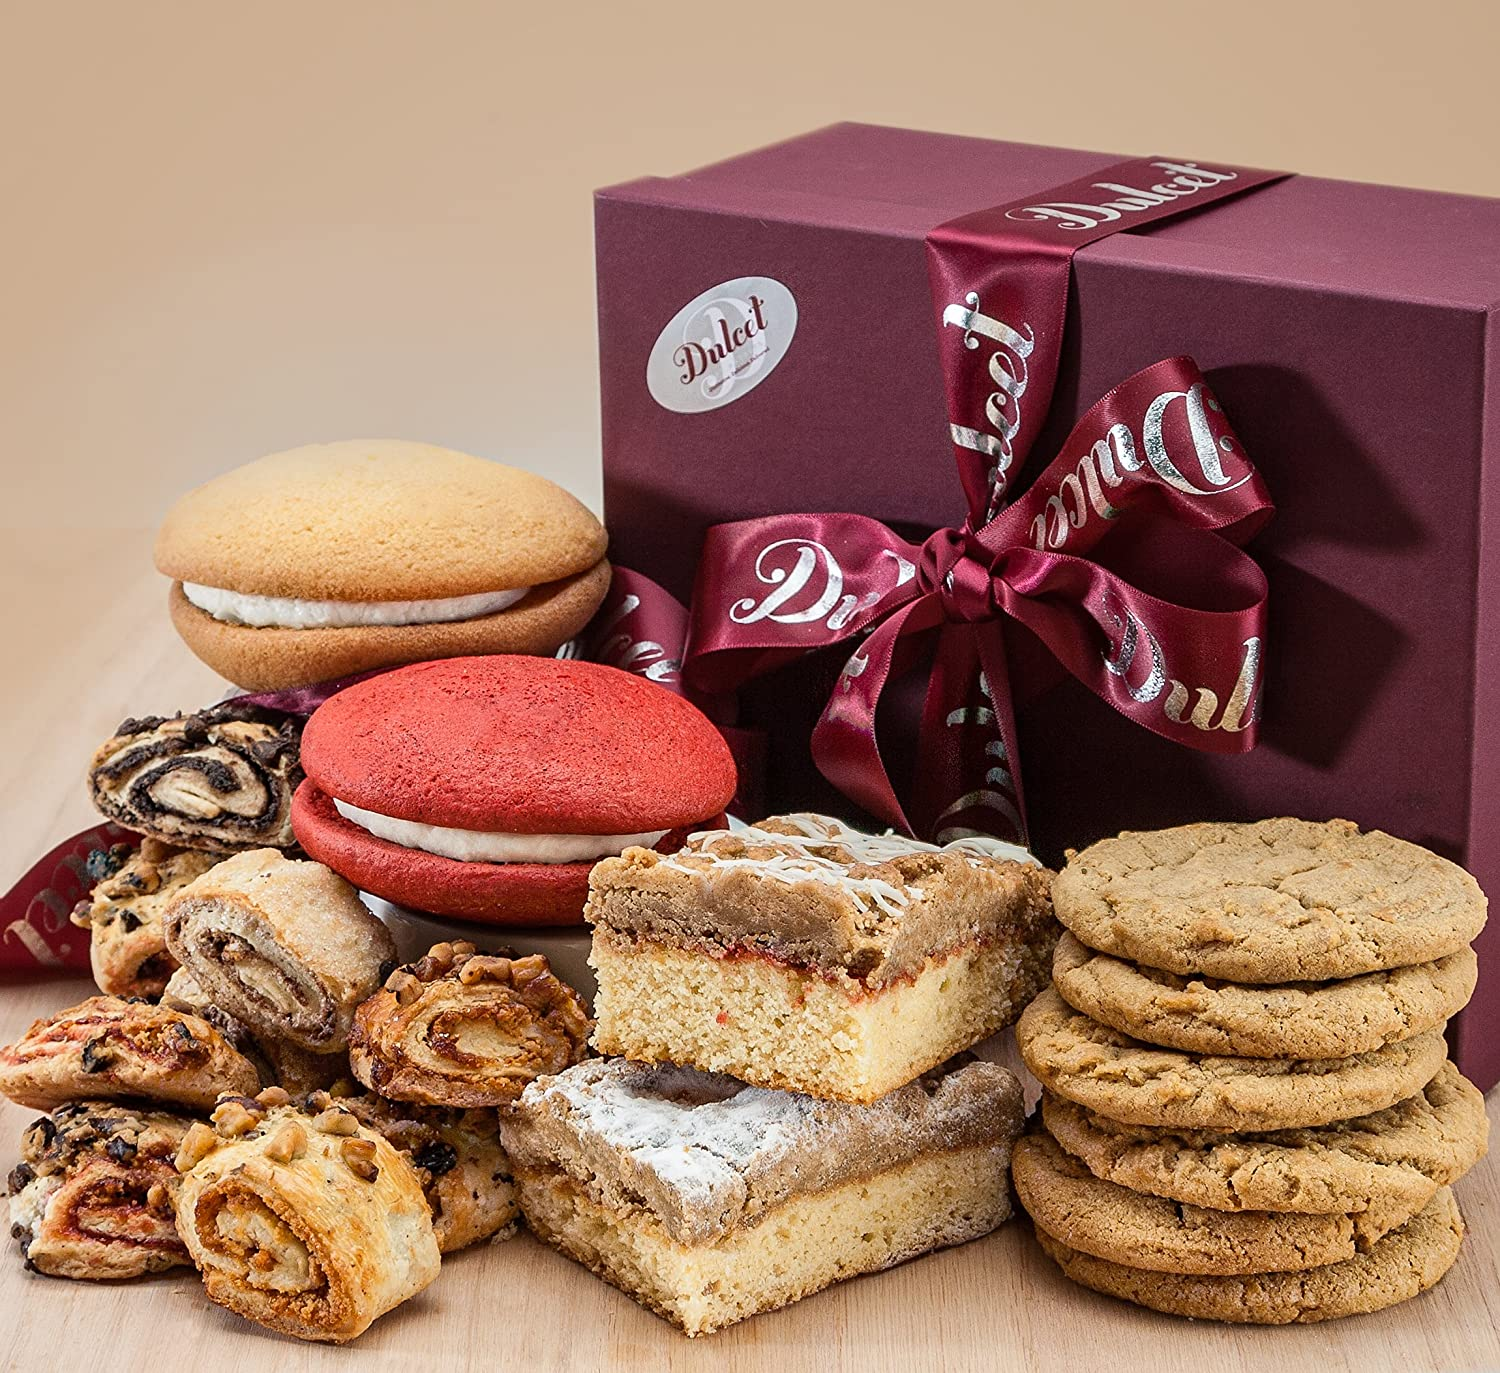 Cookies, Ruggelach, Whoopie Pies, and Crumb Cake filled in Dulcet's Bakery Gift Basket